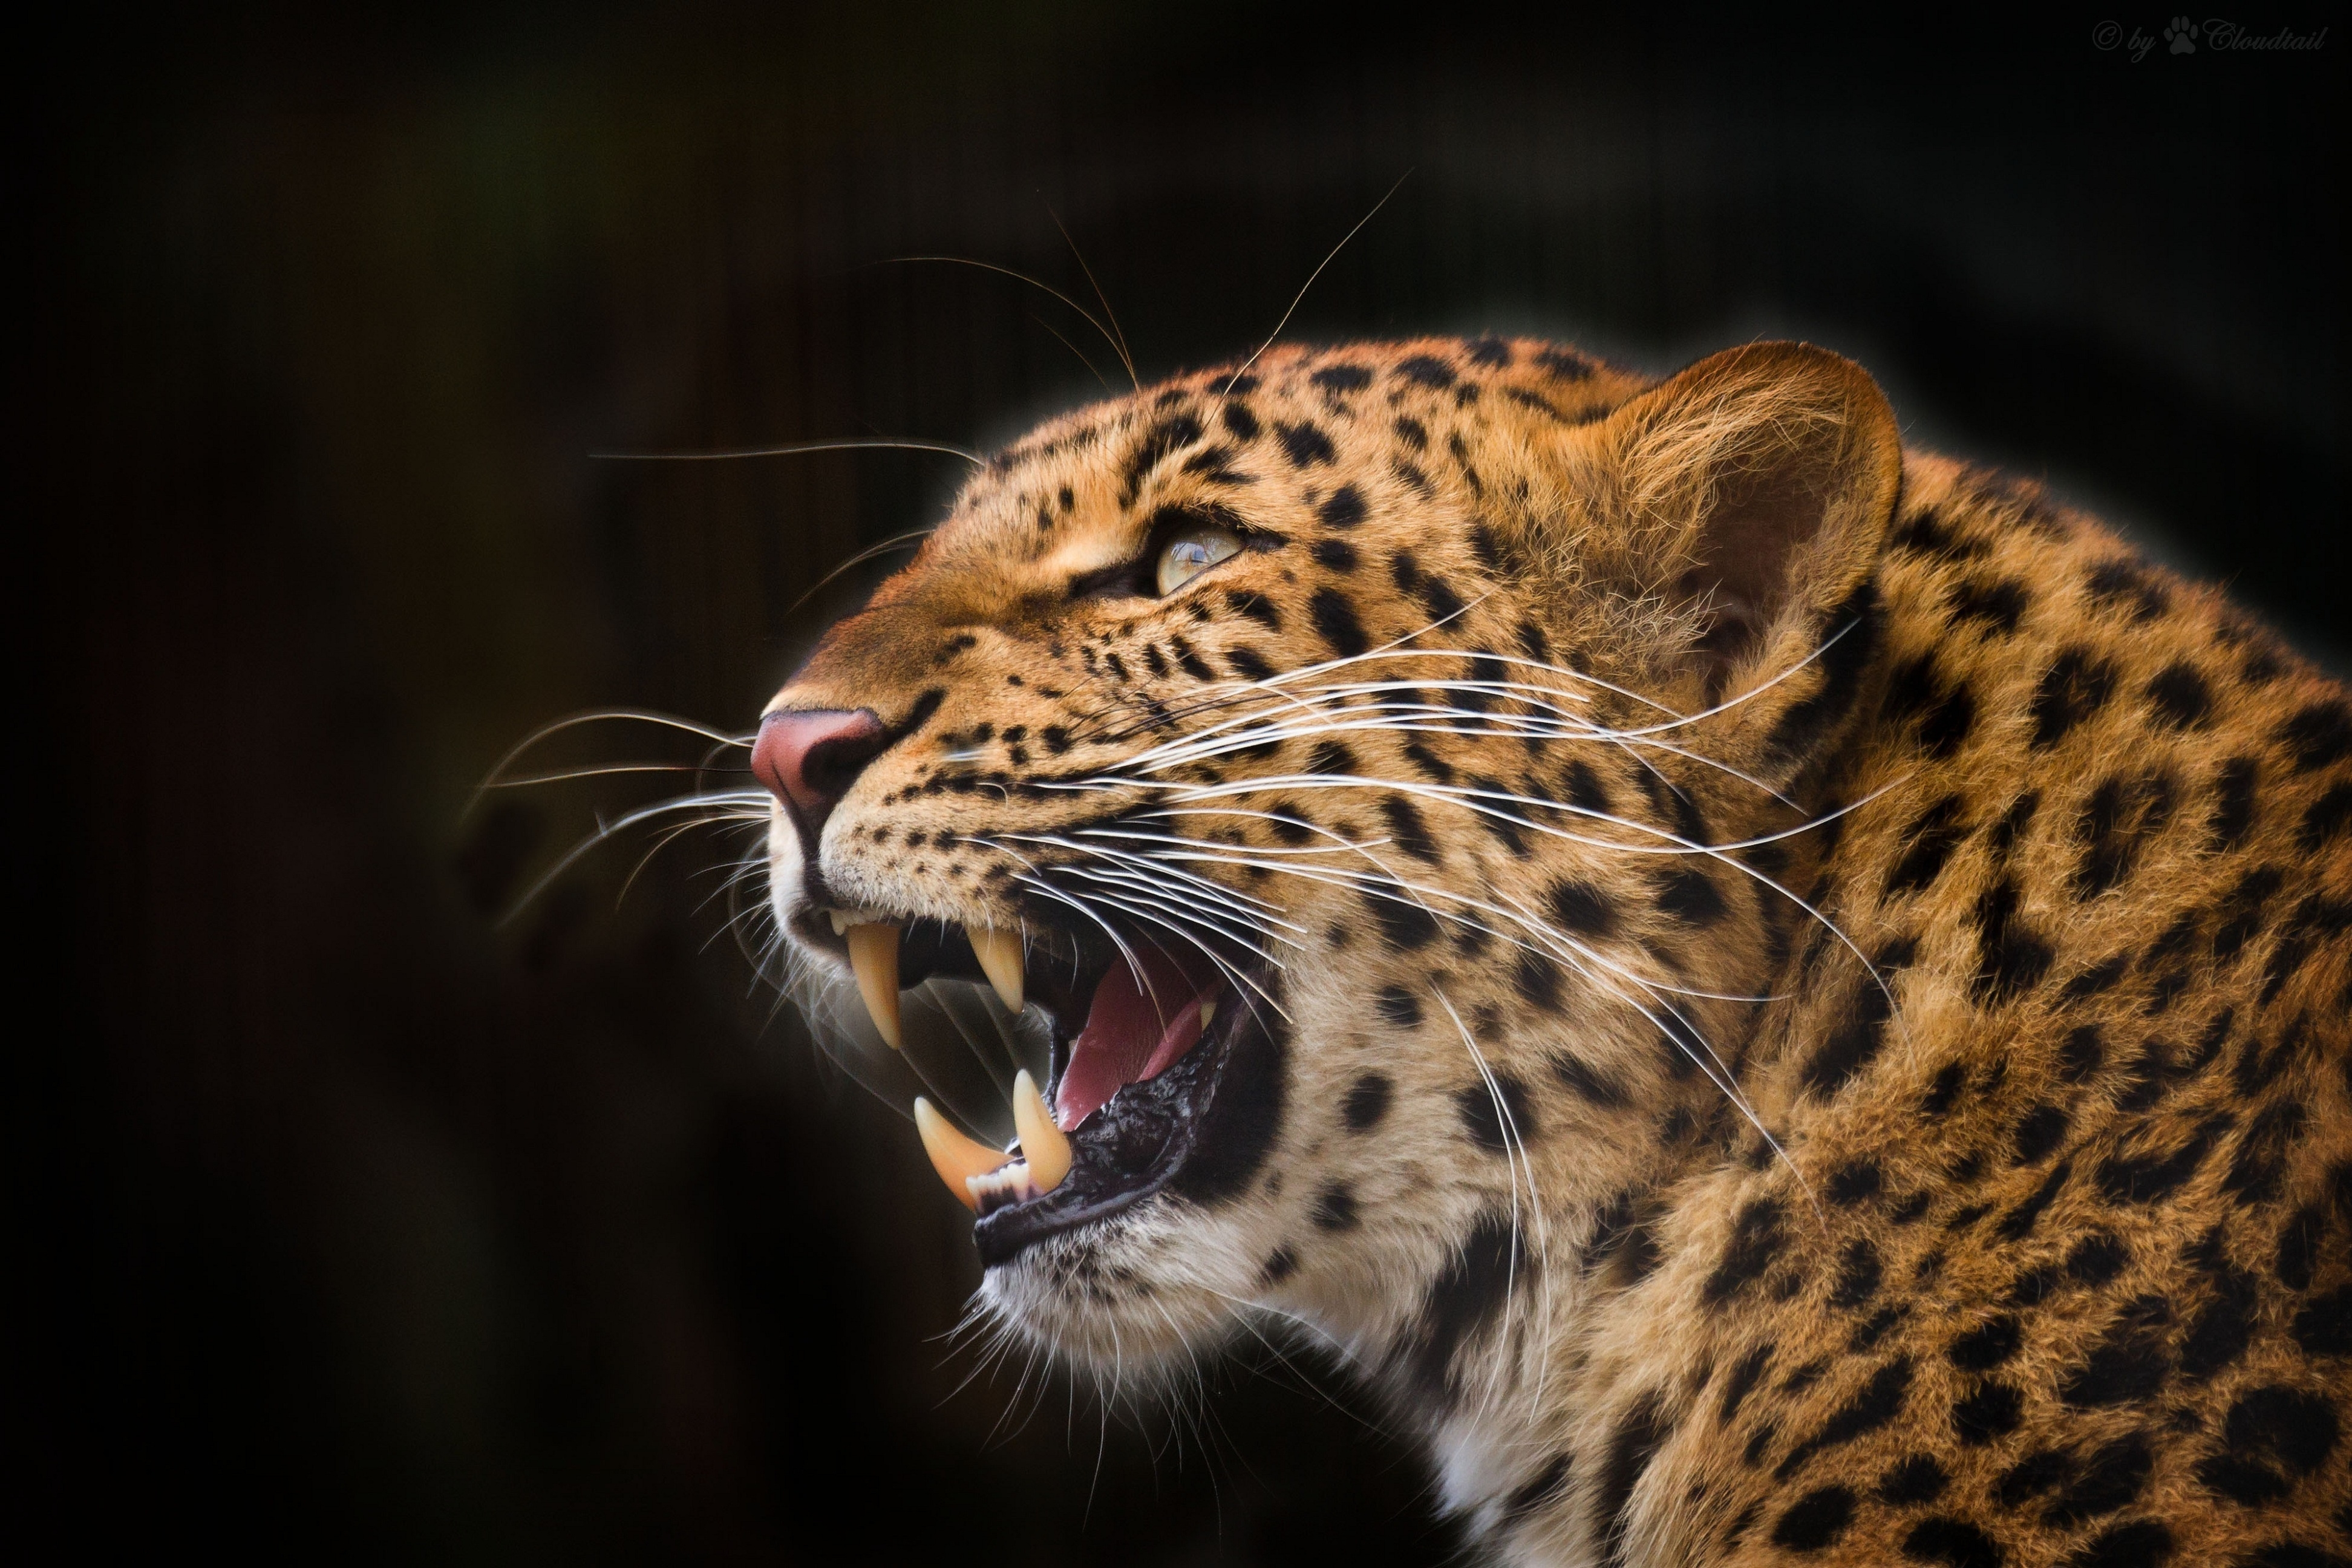 72289 download wallpaper Animals, Leopard, Predator, To Fall, Mouth, Grin, Fangs, Black Background screensavers and pictures for free